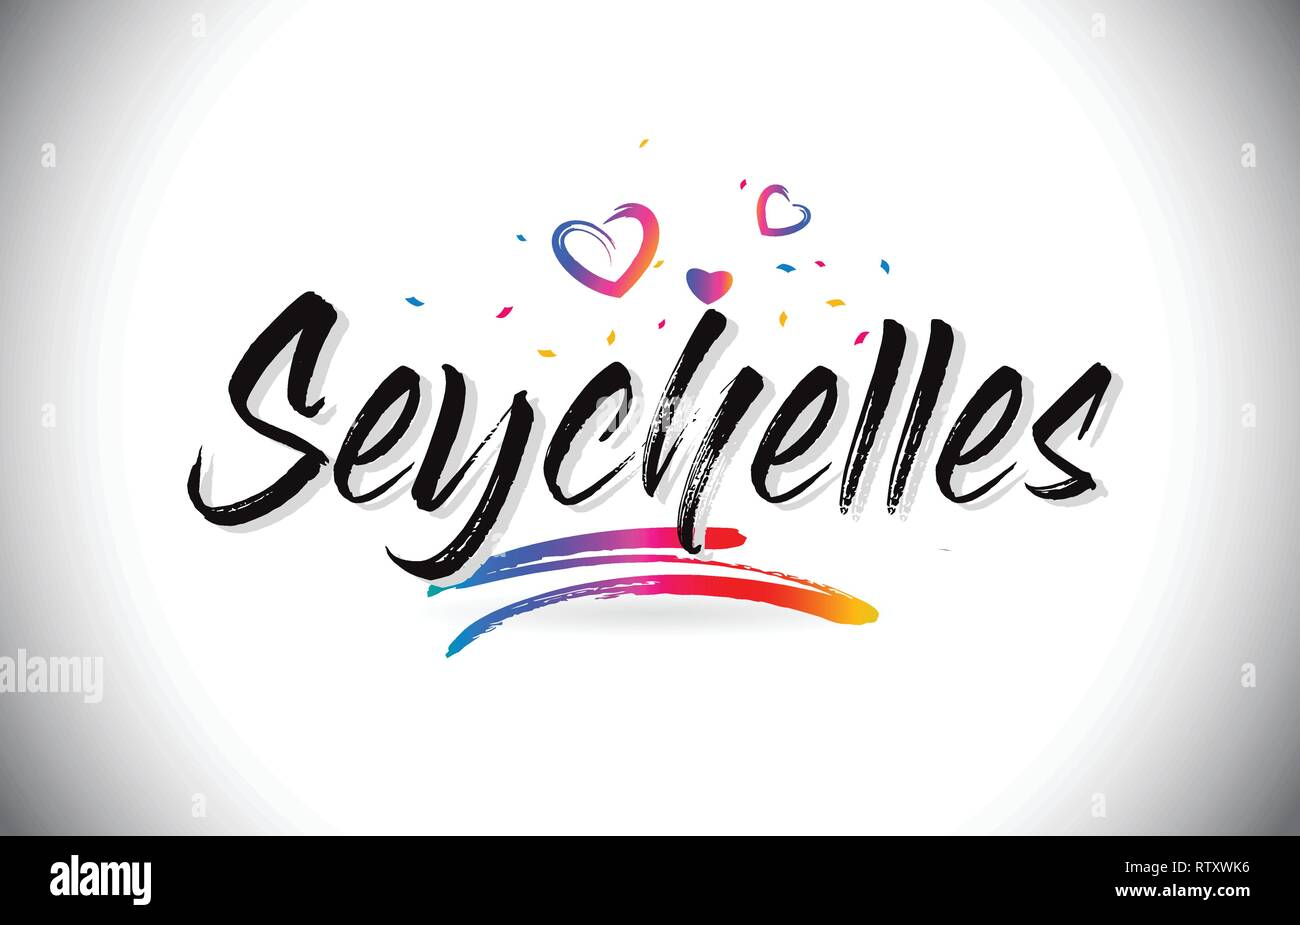 Seychelles Welcome To Word Text with Love Hearts and Creative Handwritten Font Design Vector Illustration. Stock Vector